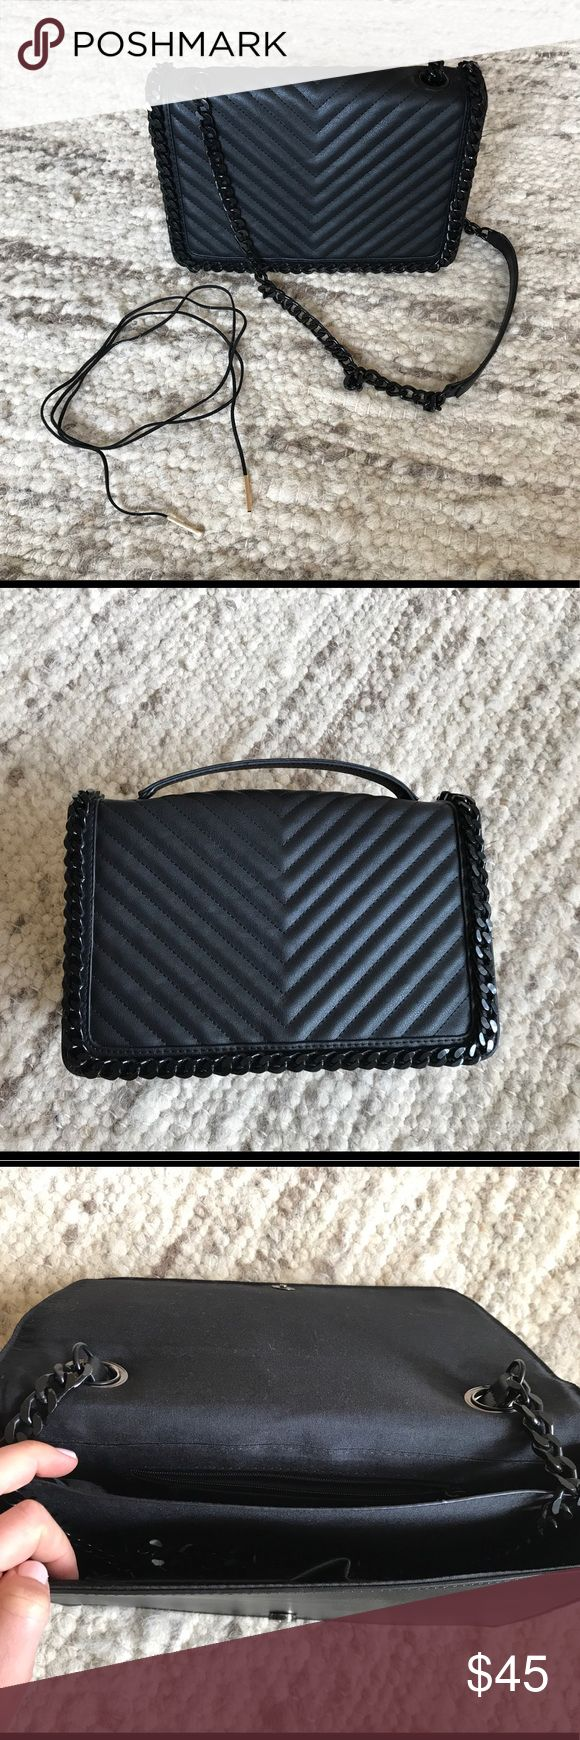 Aldo black cross body bag + 🎁Gift Black Choker 🎁 Georgeous black Aldo bag Cross body Gentry worn Chain has an option to be hidden - but not when wearing ! 🎁Gift: Black soft material choker with gold details 🎁Make me an offer (fair one), feel free to ask questions Aldo Bags Crossbody Bags